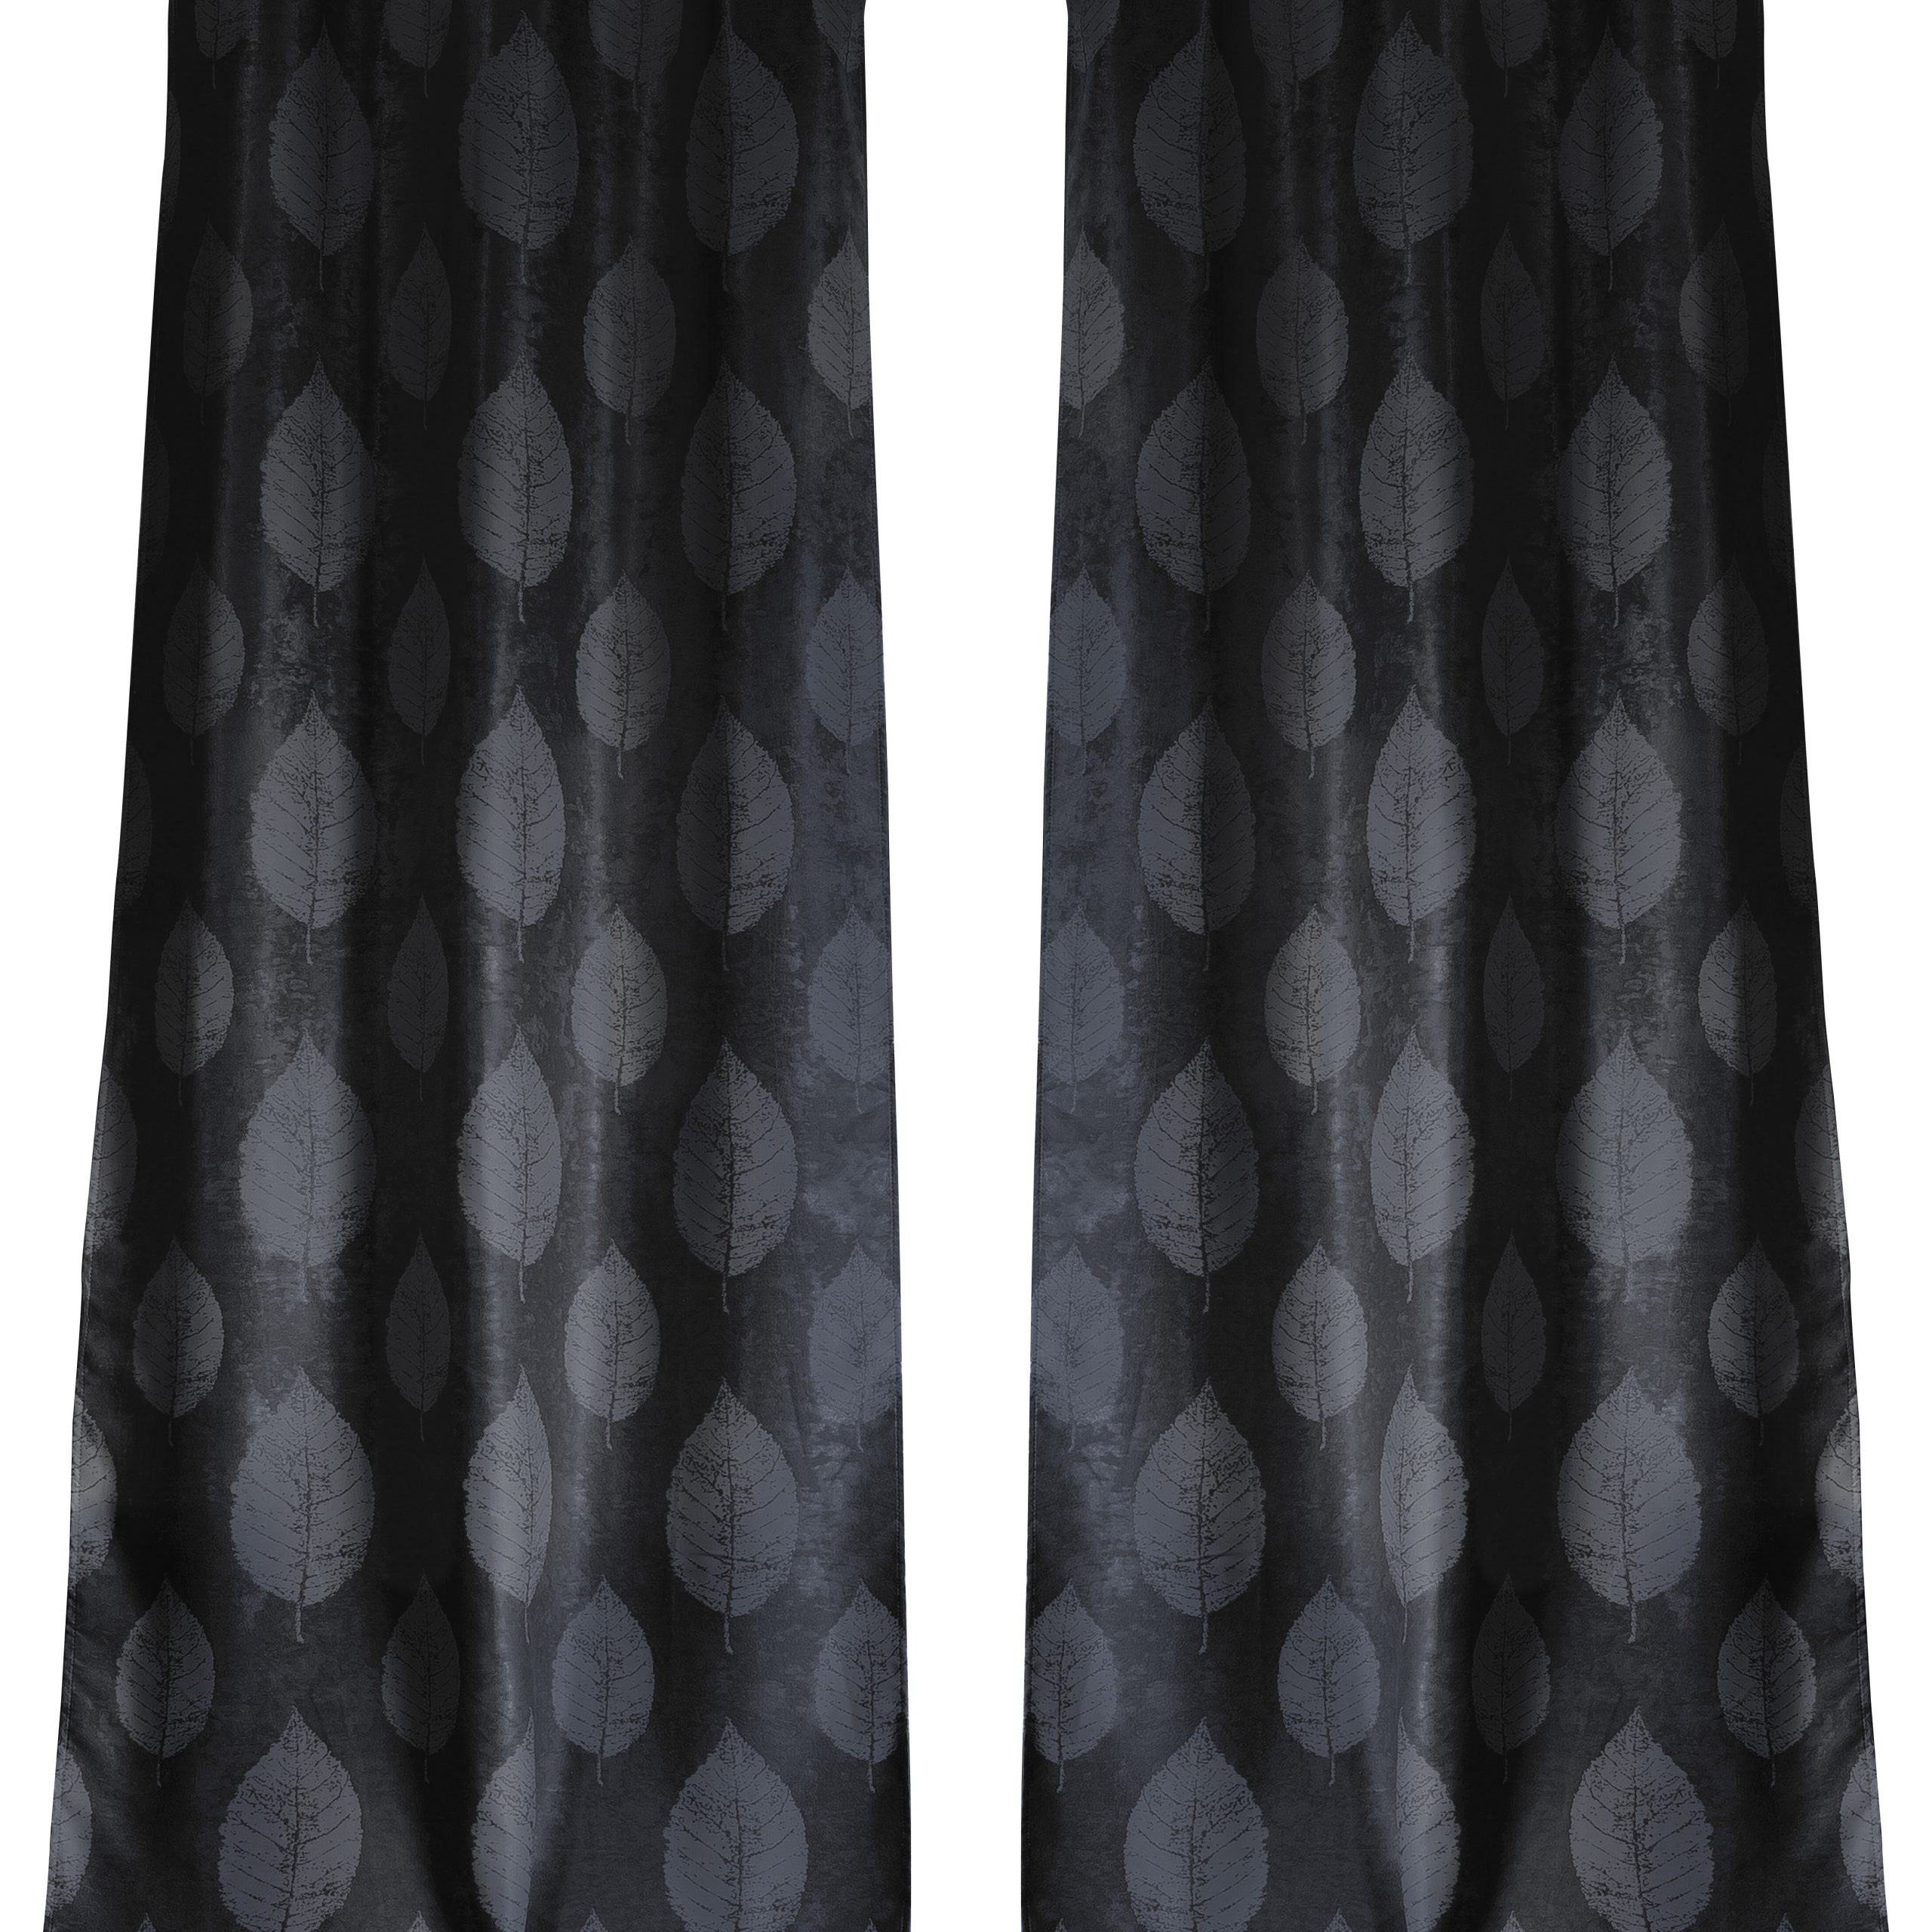 Iselin Sheila Leaf Floral/flower Blackout Grommet Curtain Panels In Well Known Overseas Leaf Swirl Embroidered Curtain Panel Pairs (View 9 of 21)